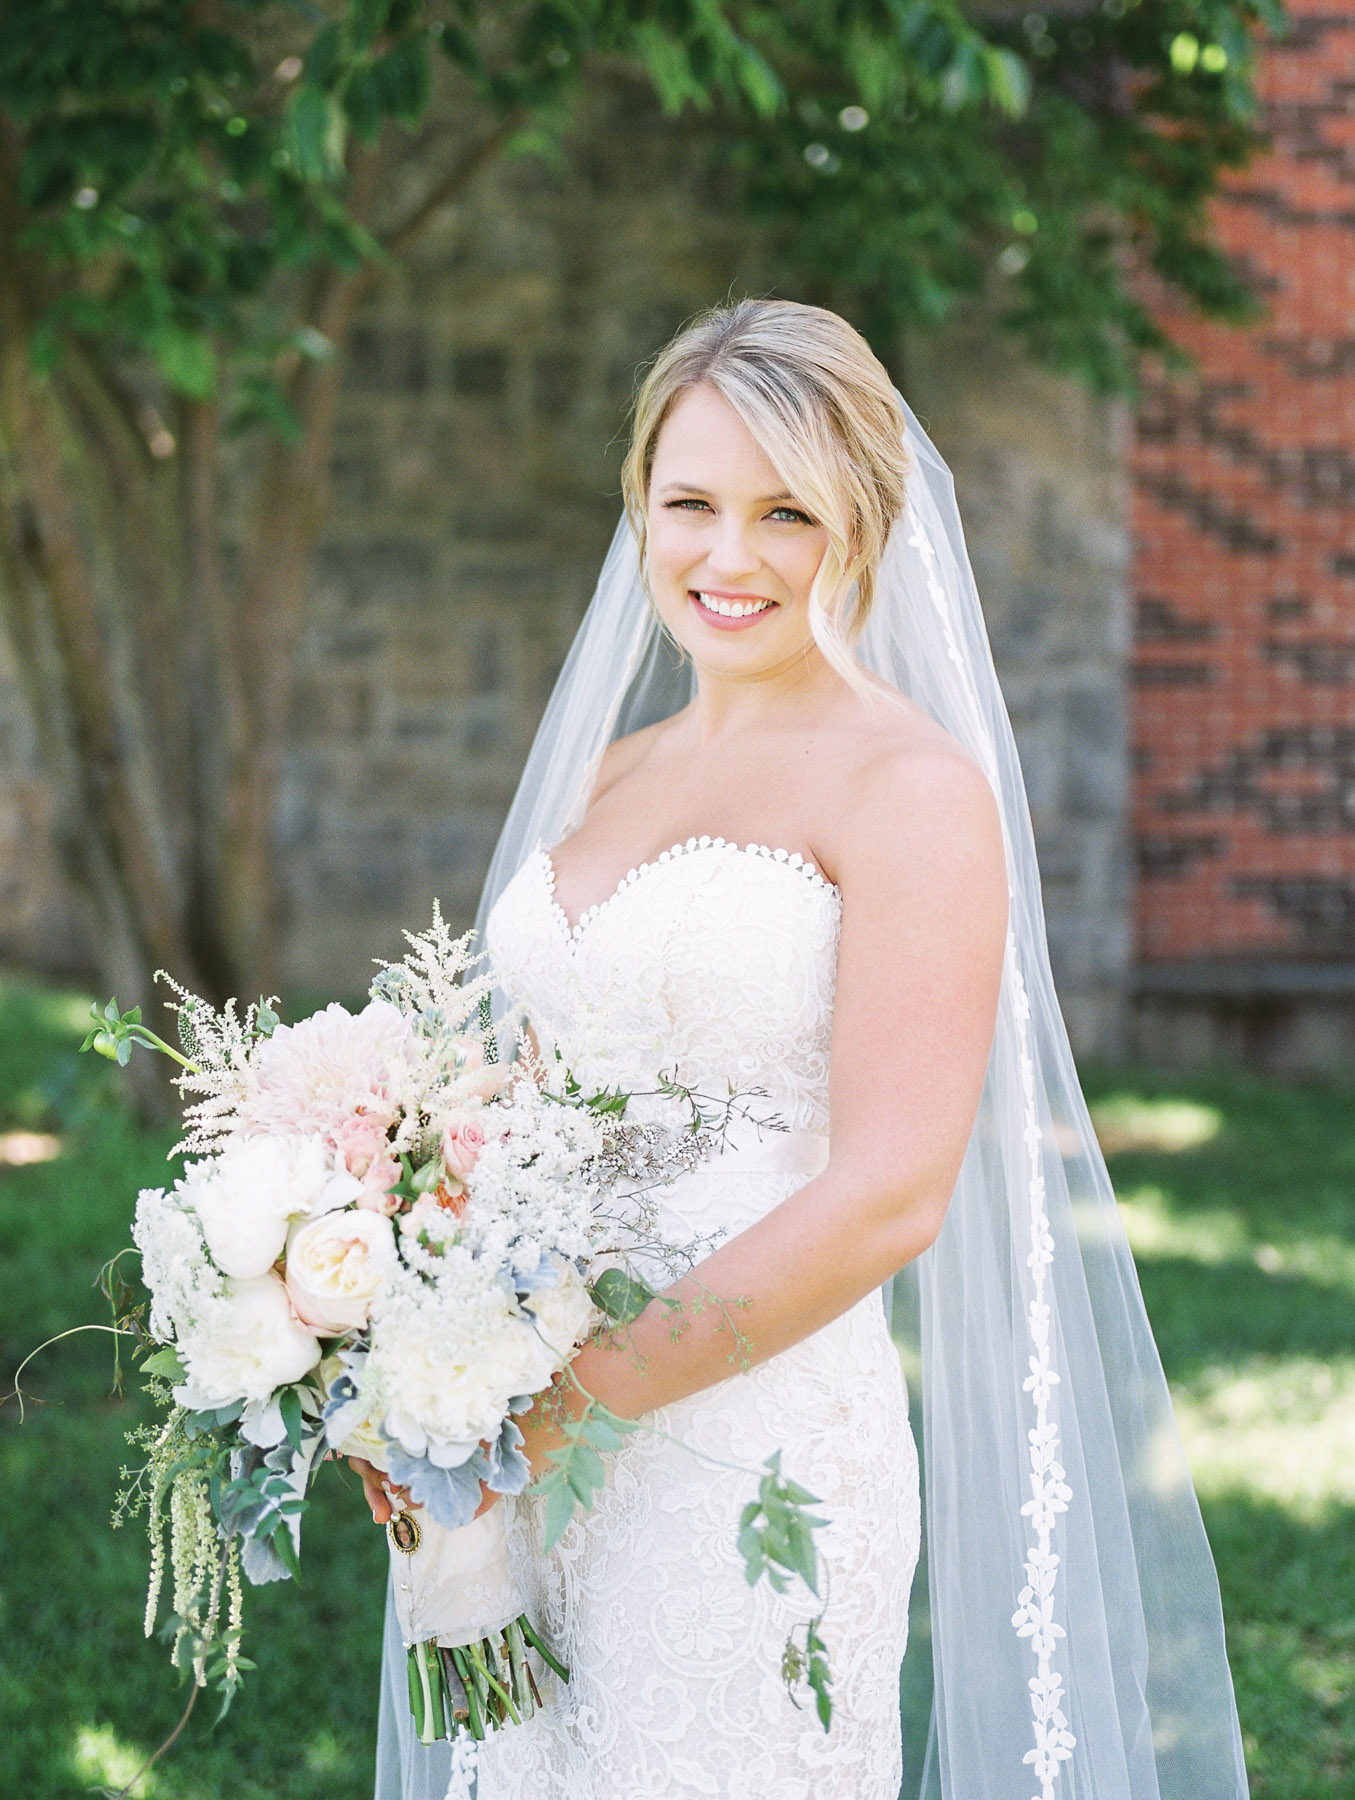 West Point Wedding by Michelle Lange Photography-20.jpg